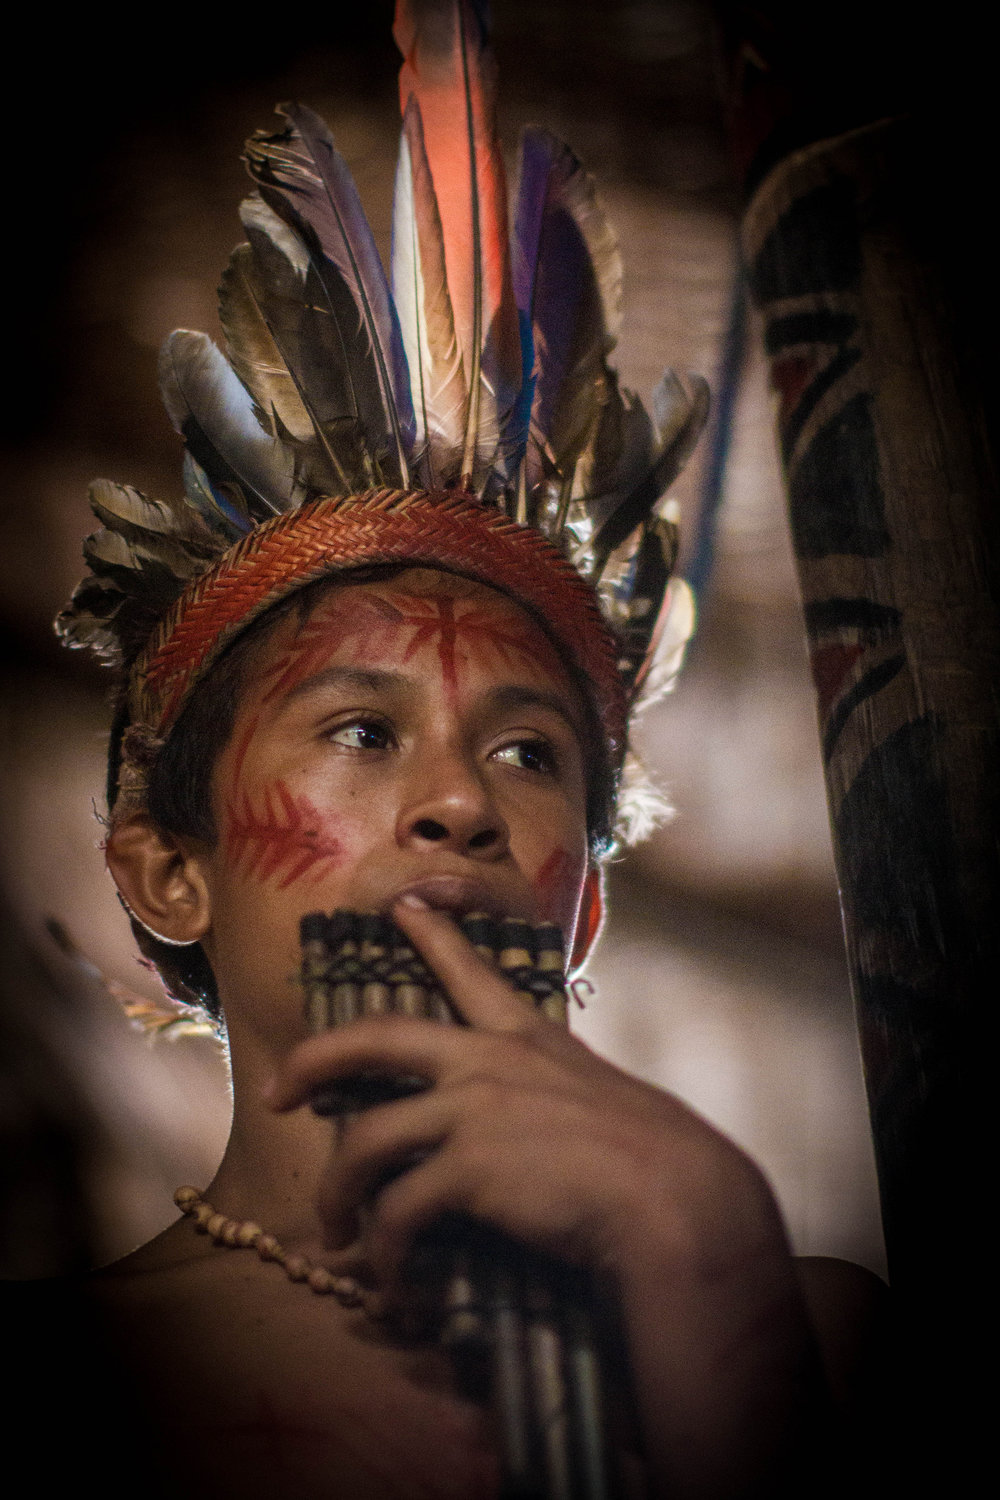 g_pedro bayeux tribe game playing instruments during the match.jpg